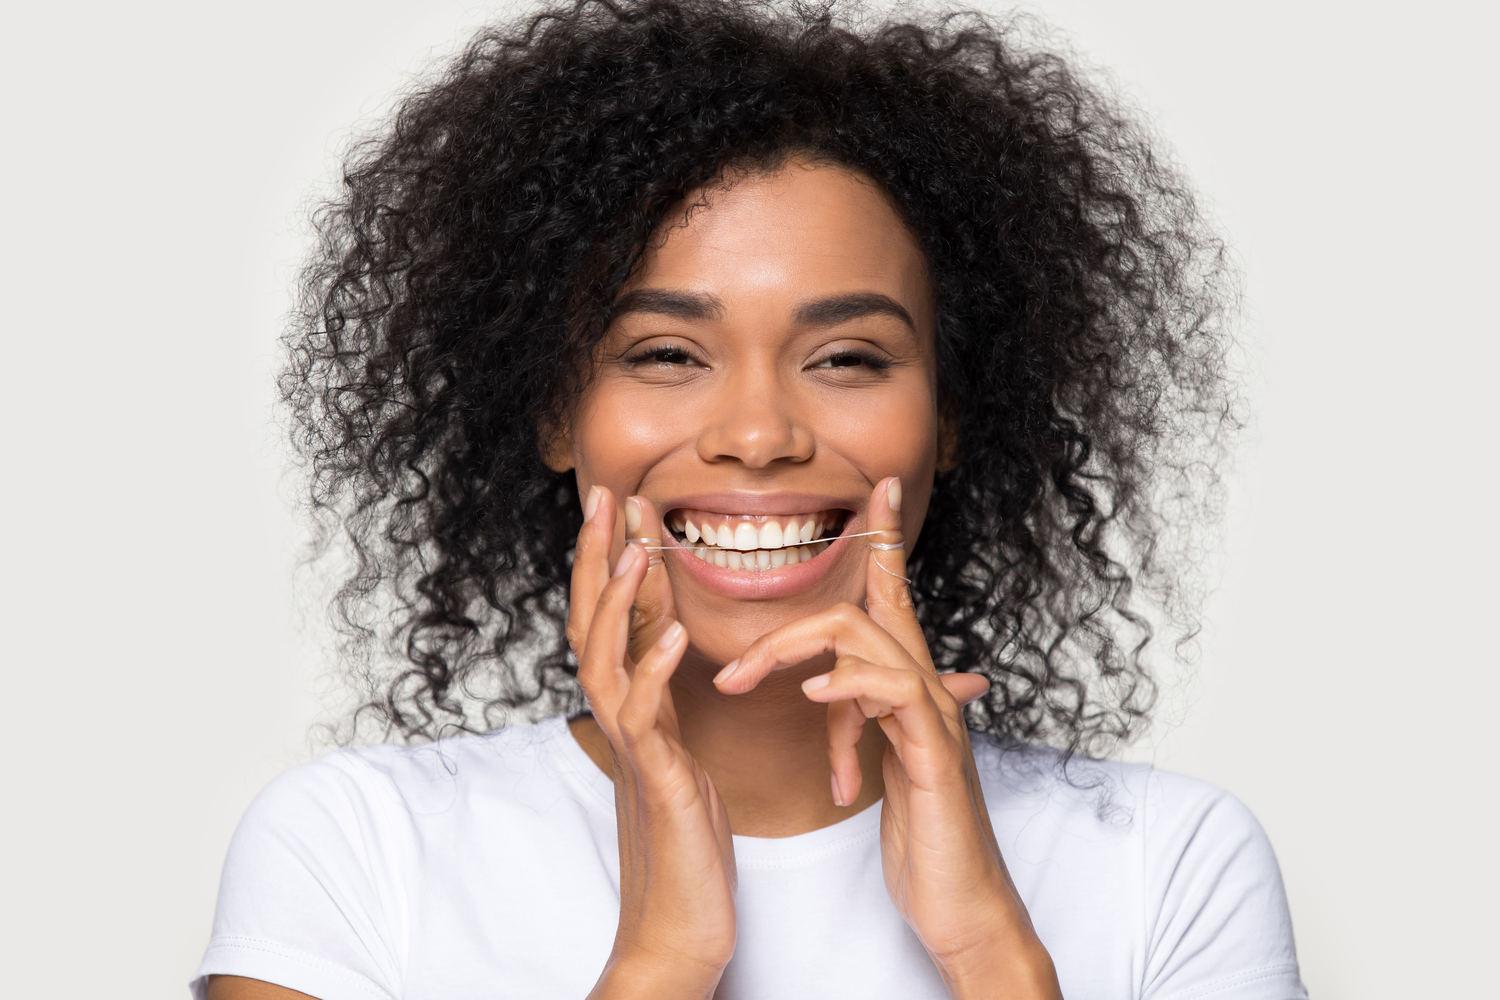 October is Oral Hygiene Month: What are 4 elements for a healthy smile?